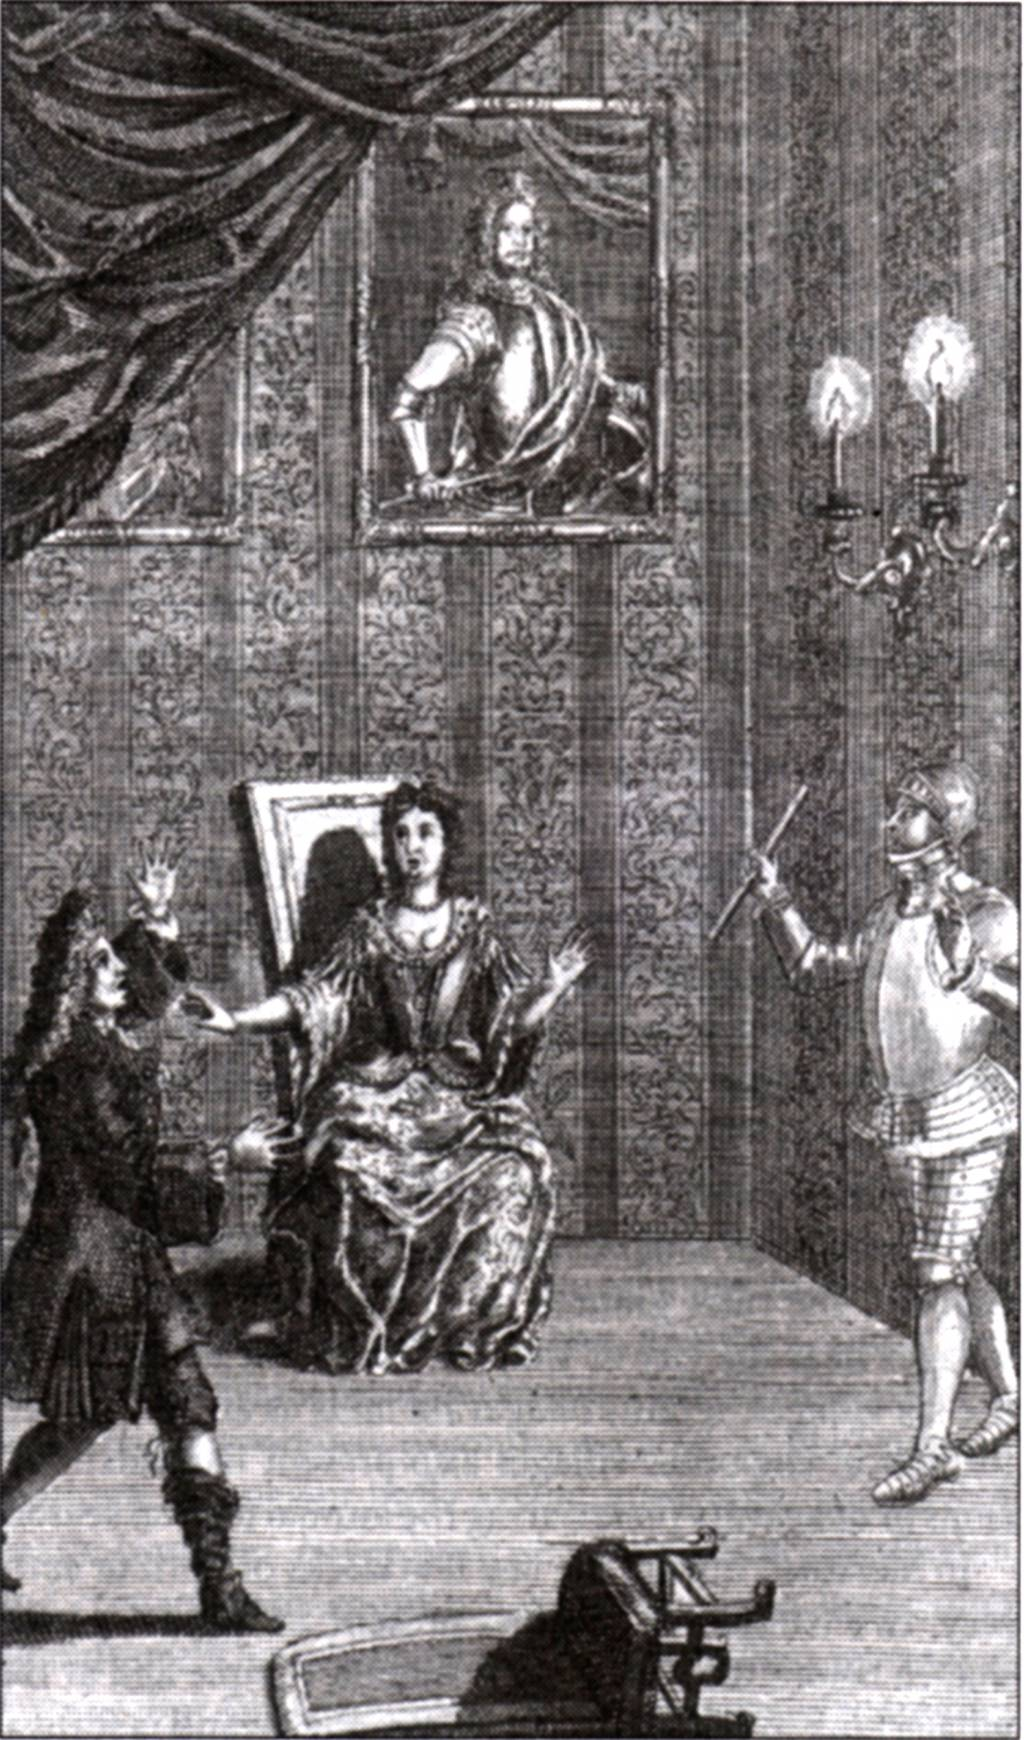 an analysis of the character of prince hamlet in the play hamlet By hamlet's father, is a man of action, and his character serves as a foil to the contemplative prince hamlet polonius (lord chamberlain), his son laertes and daughter ophelia are also important characters in this drama.